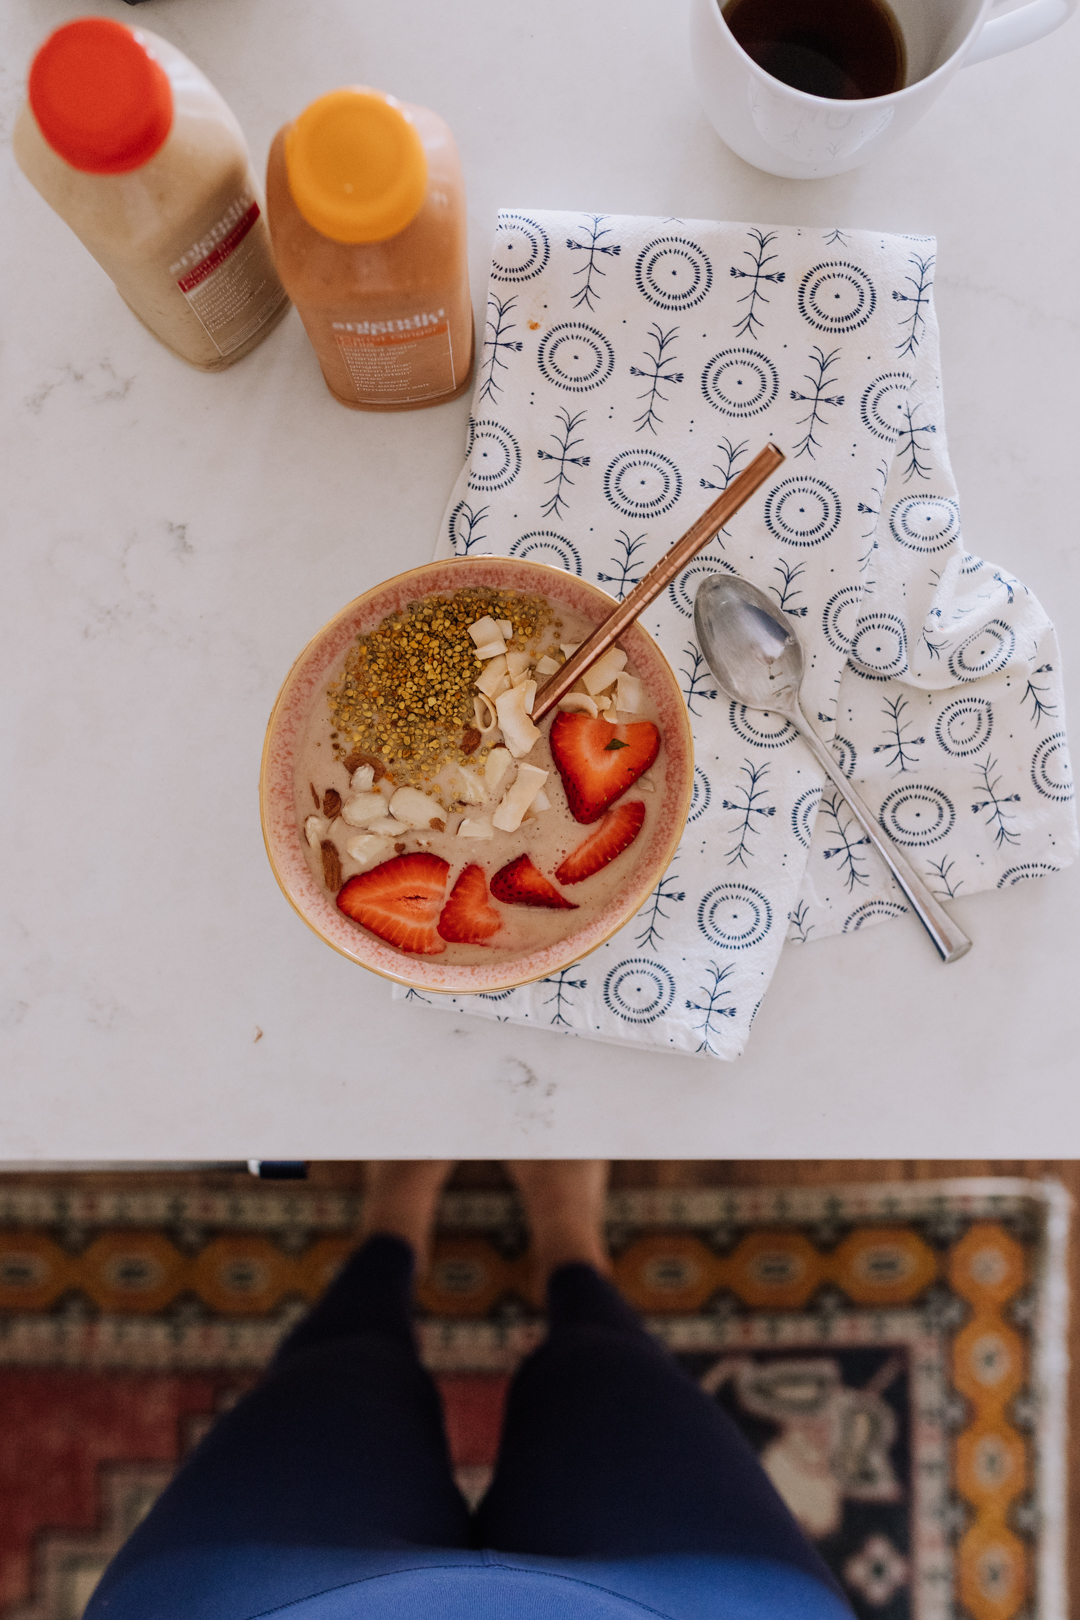 splendid spoon smoothie bowl | thelovedesignedlife.com #breakfast #smoothiebowl #thedailymoments